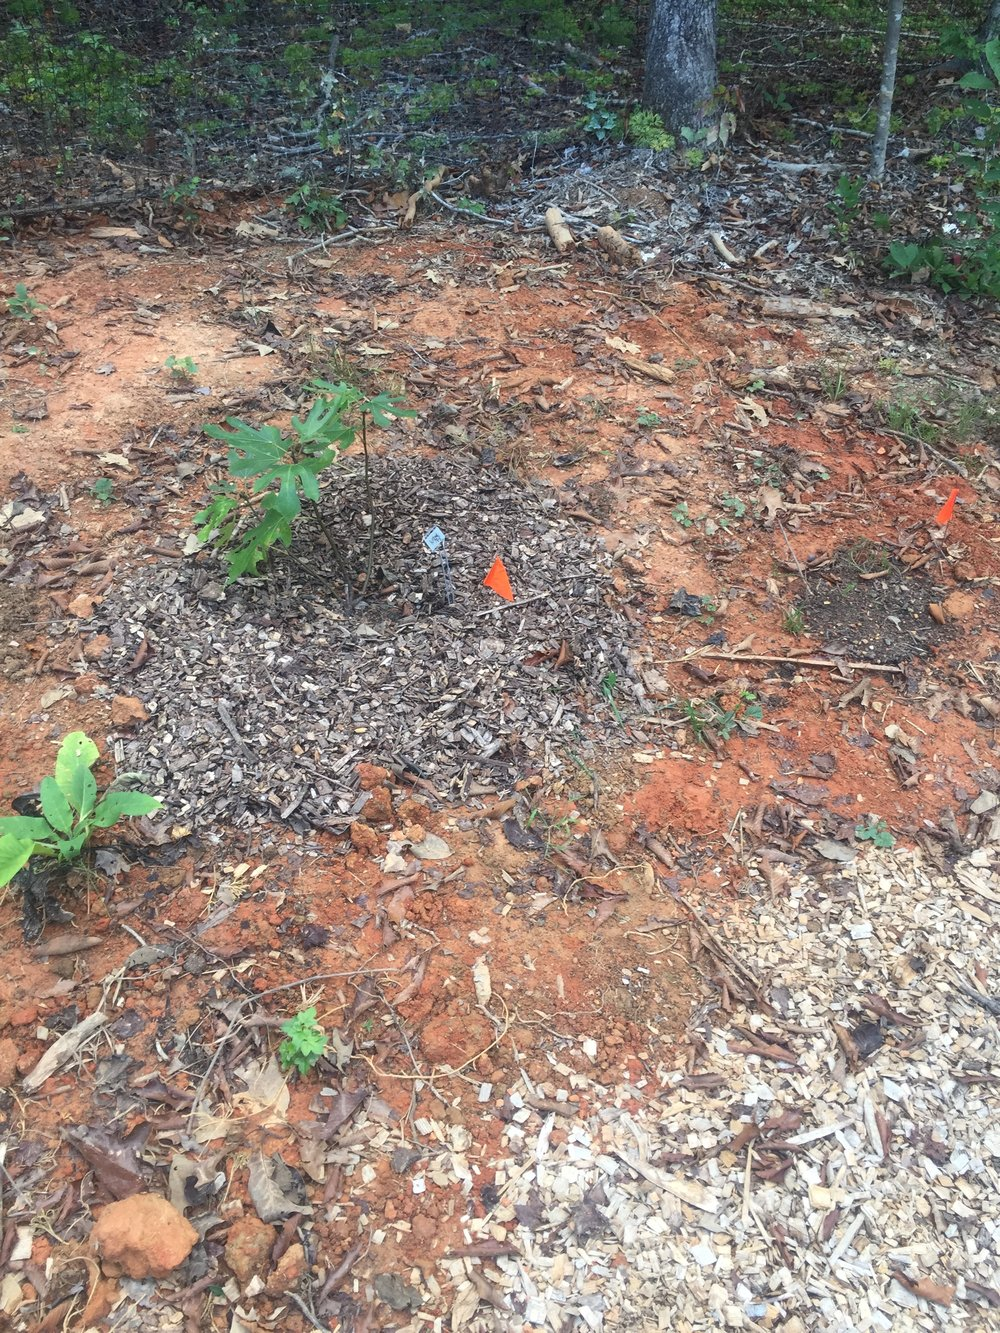 baby fig - Where it was possible and made sense, I did plantings of mutually beneficial plants - for example - this one is a fig + yarrow + comfrey. The yarrow will bring in beneficial pollinators that support the fig and the comfrey will help keep down weeds at the base while the fig gets stronger and bigger, will add incredible nutrients and minerals to the soil when its leaves drop, and also attracts pollinators. I can also use both the yarrow and comfrey in my medicine making!It's not looking like much at the moment but I'm excited to see how it will all fill in 3, 5...10 years down the road!Do be in touch with any questions or comments, I love hearing from you and sharing ideas!